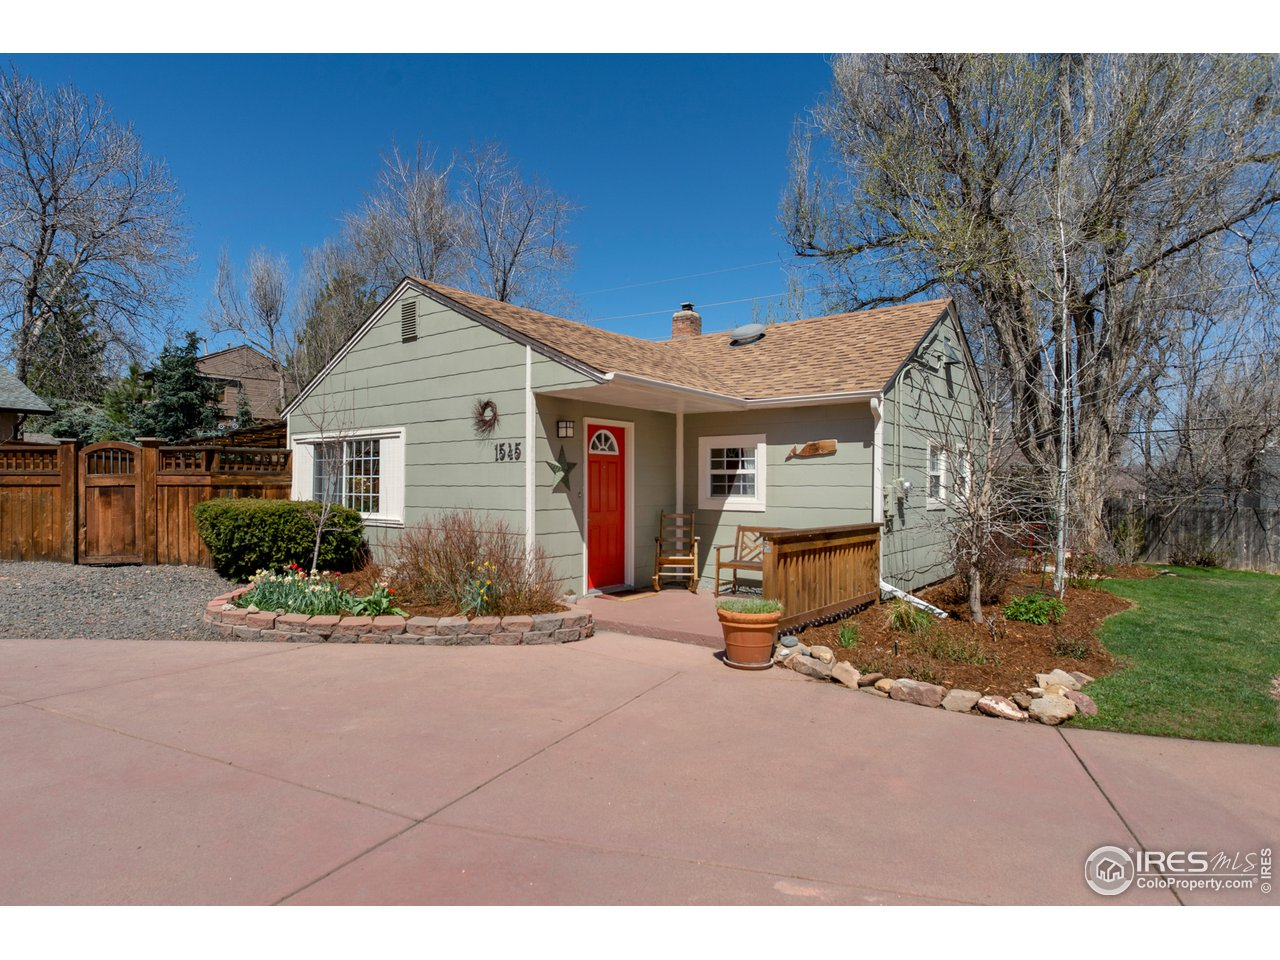 1545 Norwood Ave, Boulder CO 80304